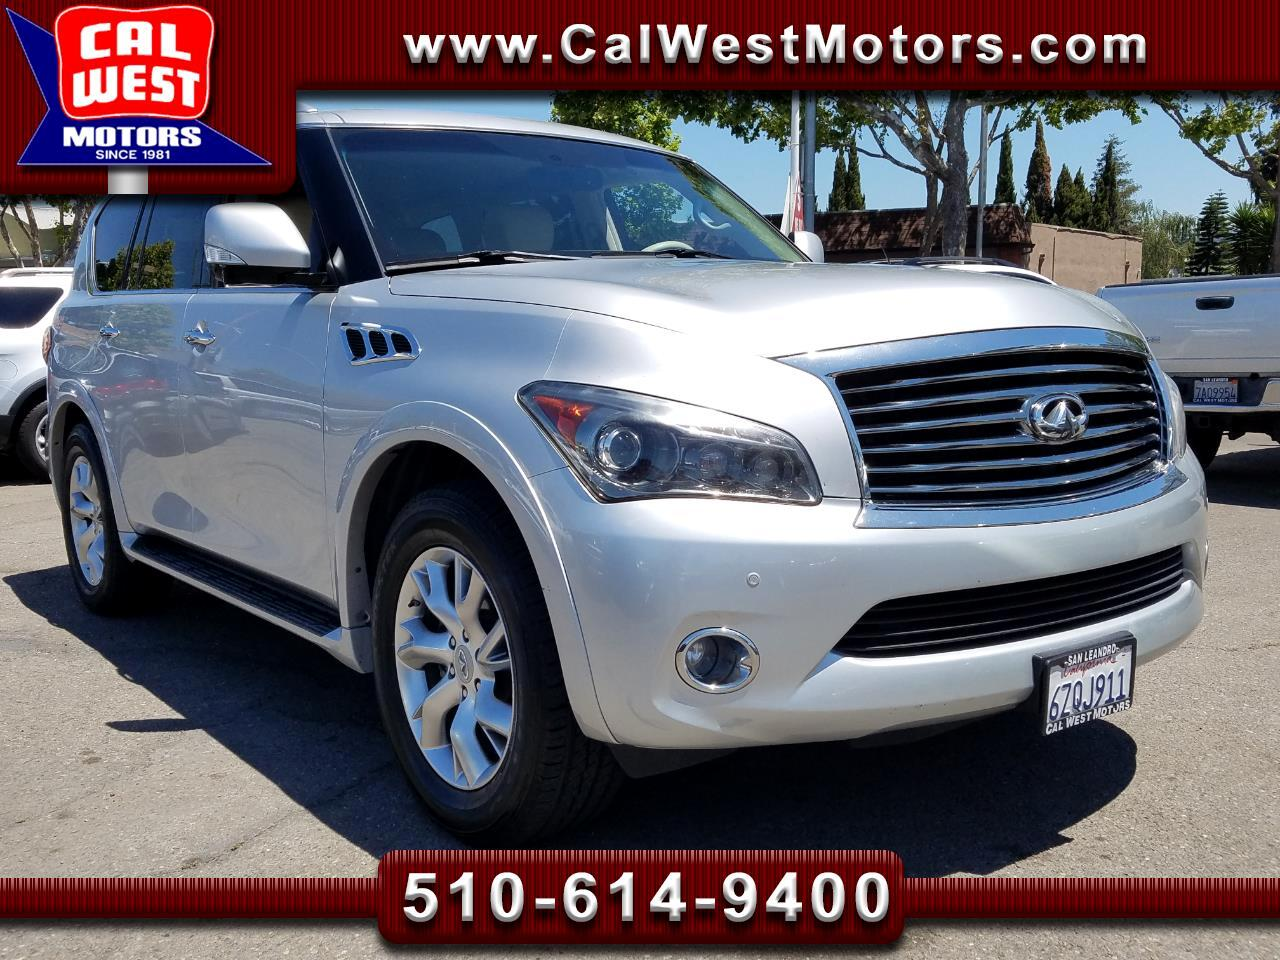 2011 Infiniti QX56 4WD 7Pass NAV TheaterPkg Loaded ExMtnce Luxurious